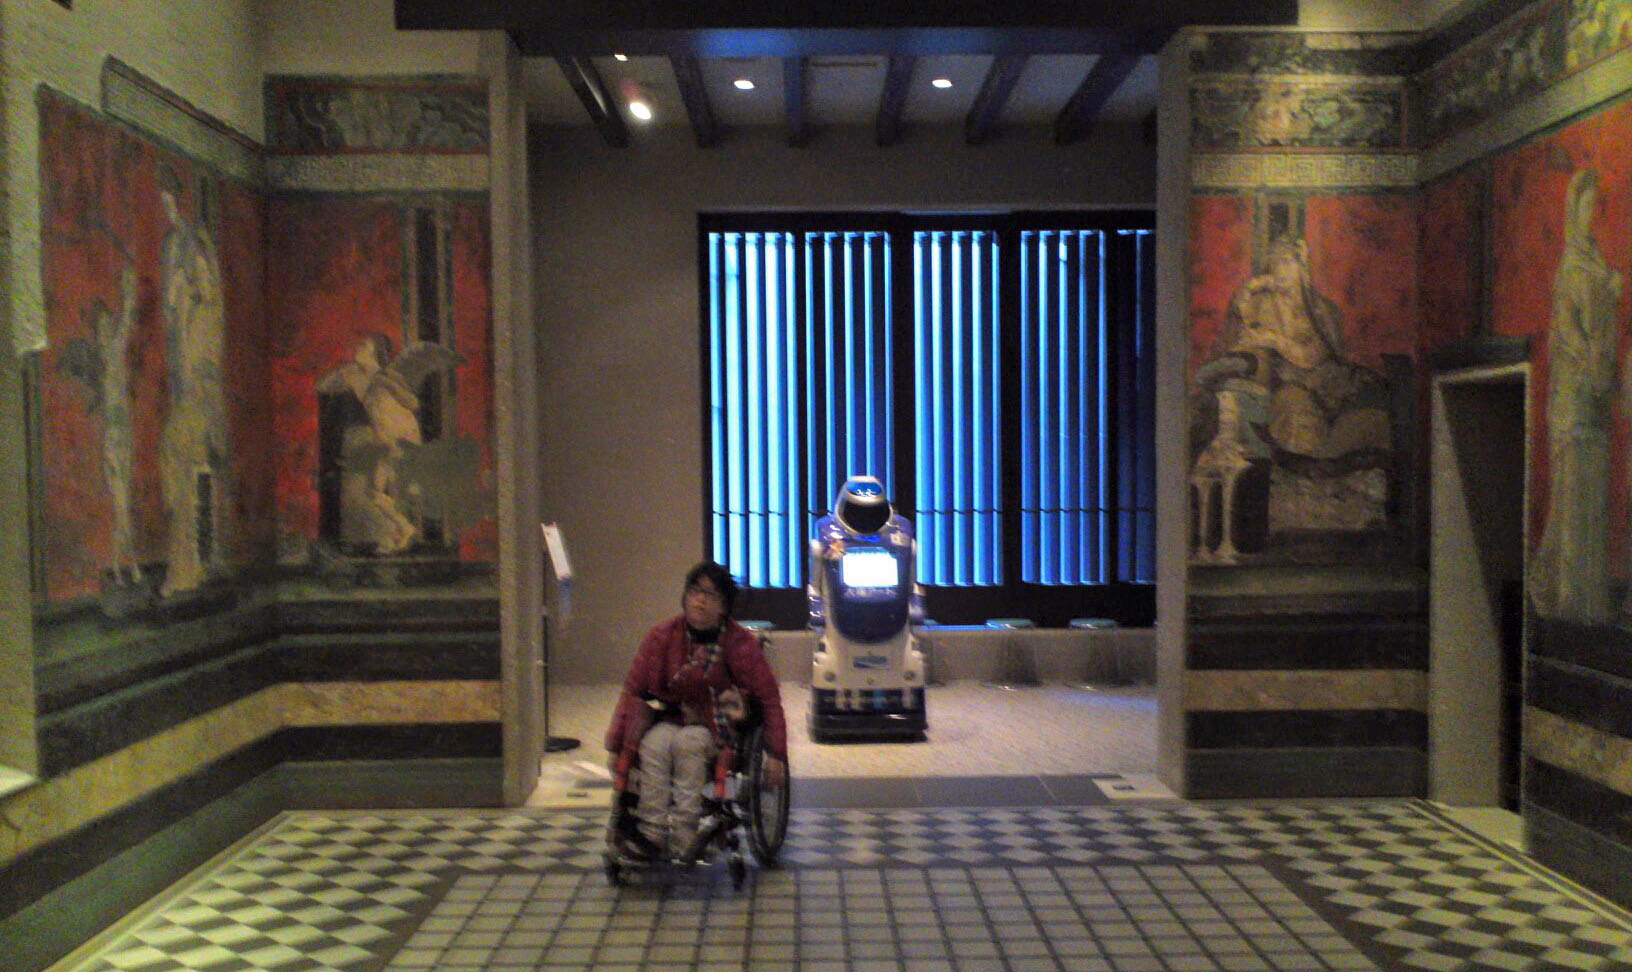 Wheelchair Travels with my daughter